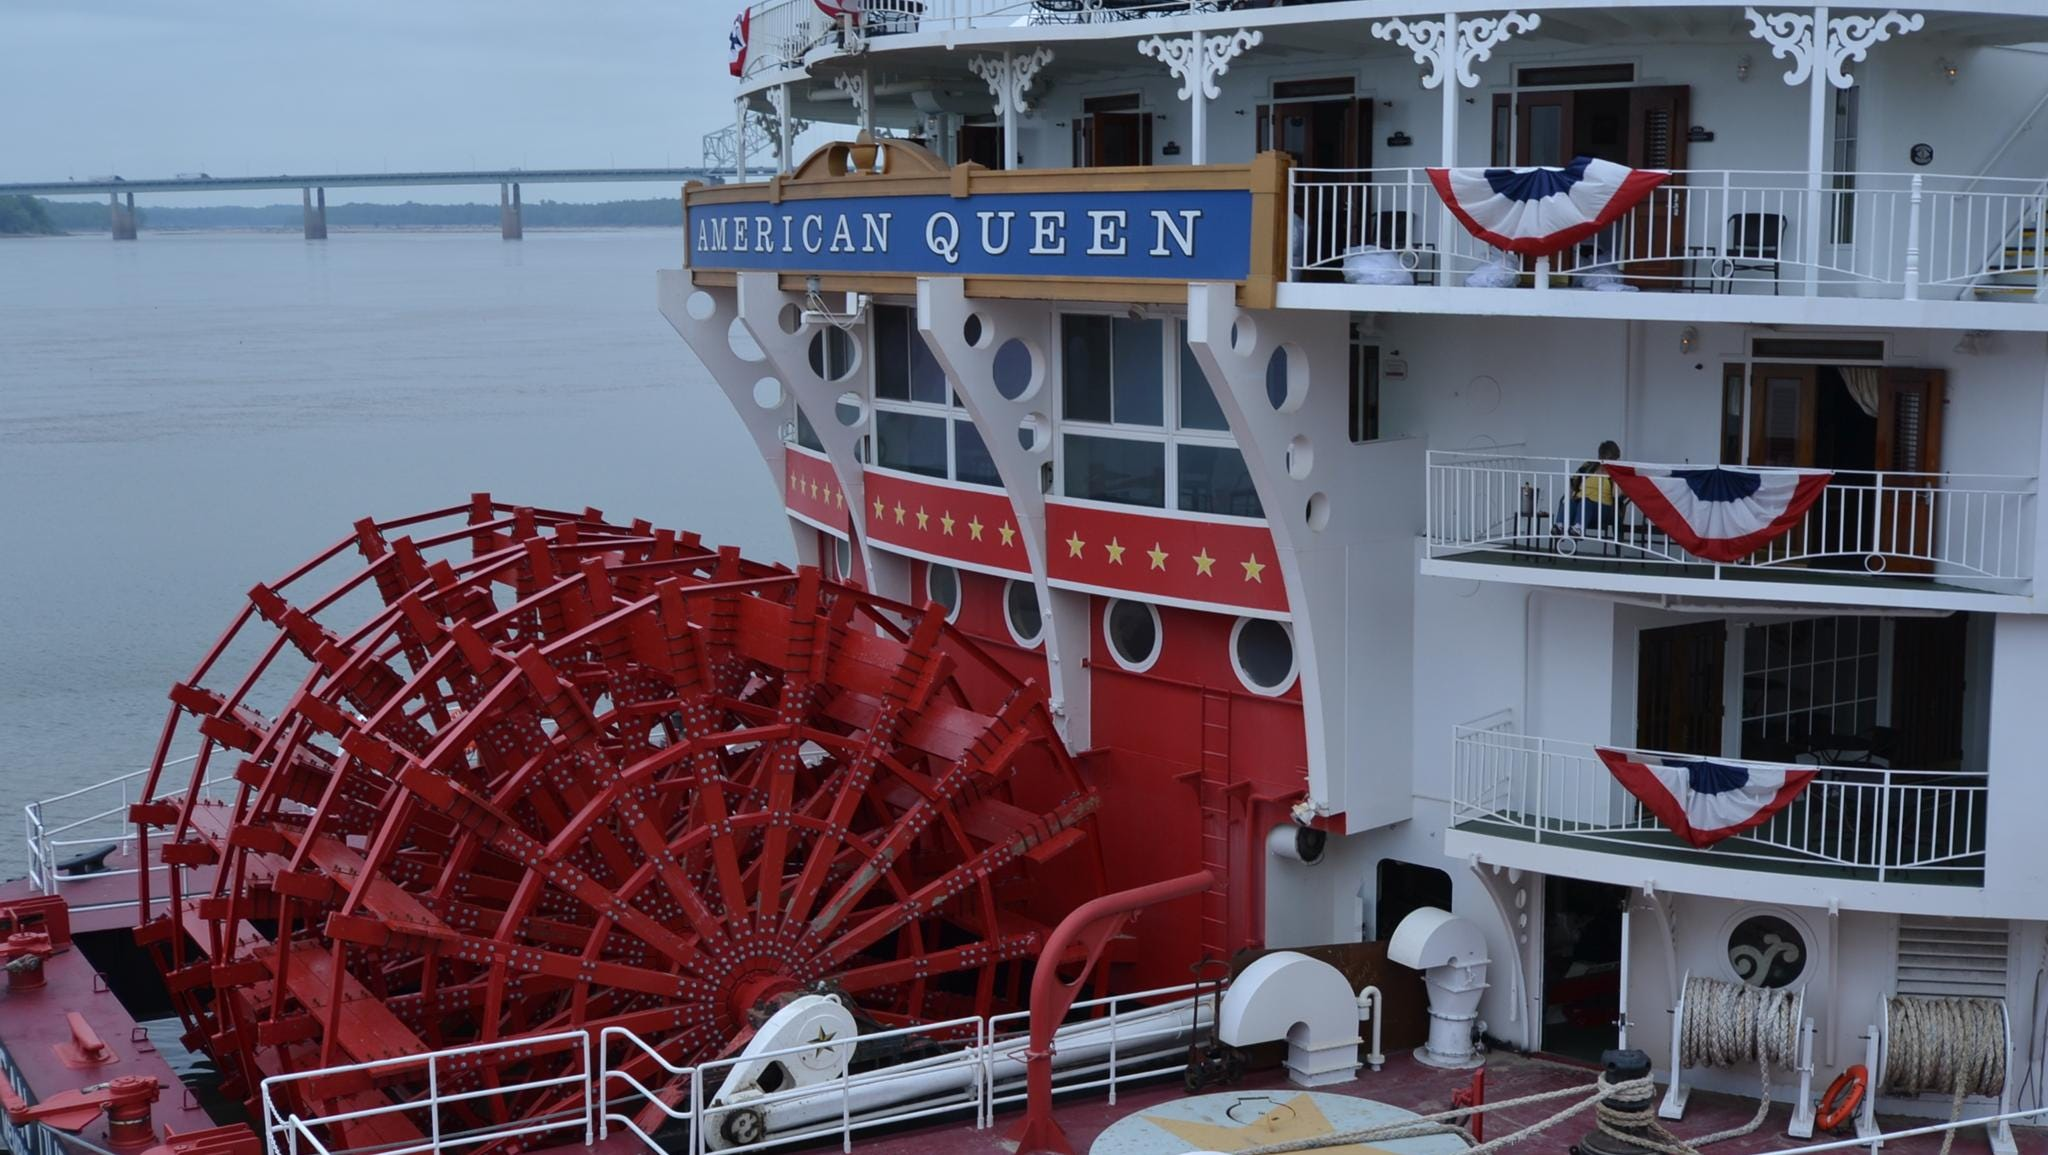 Built in 1995 at a cost of $60 million, the 418-foot-long American Queen is an authentic steamboat propelled by the large red paddle wheel on its back.